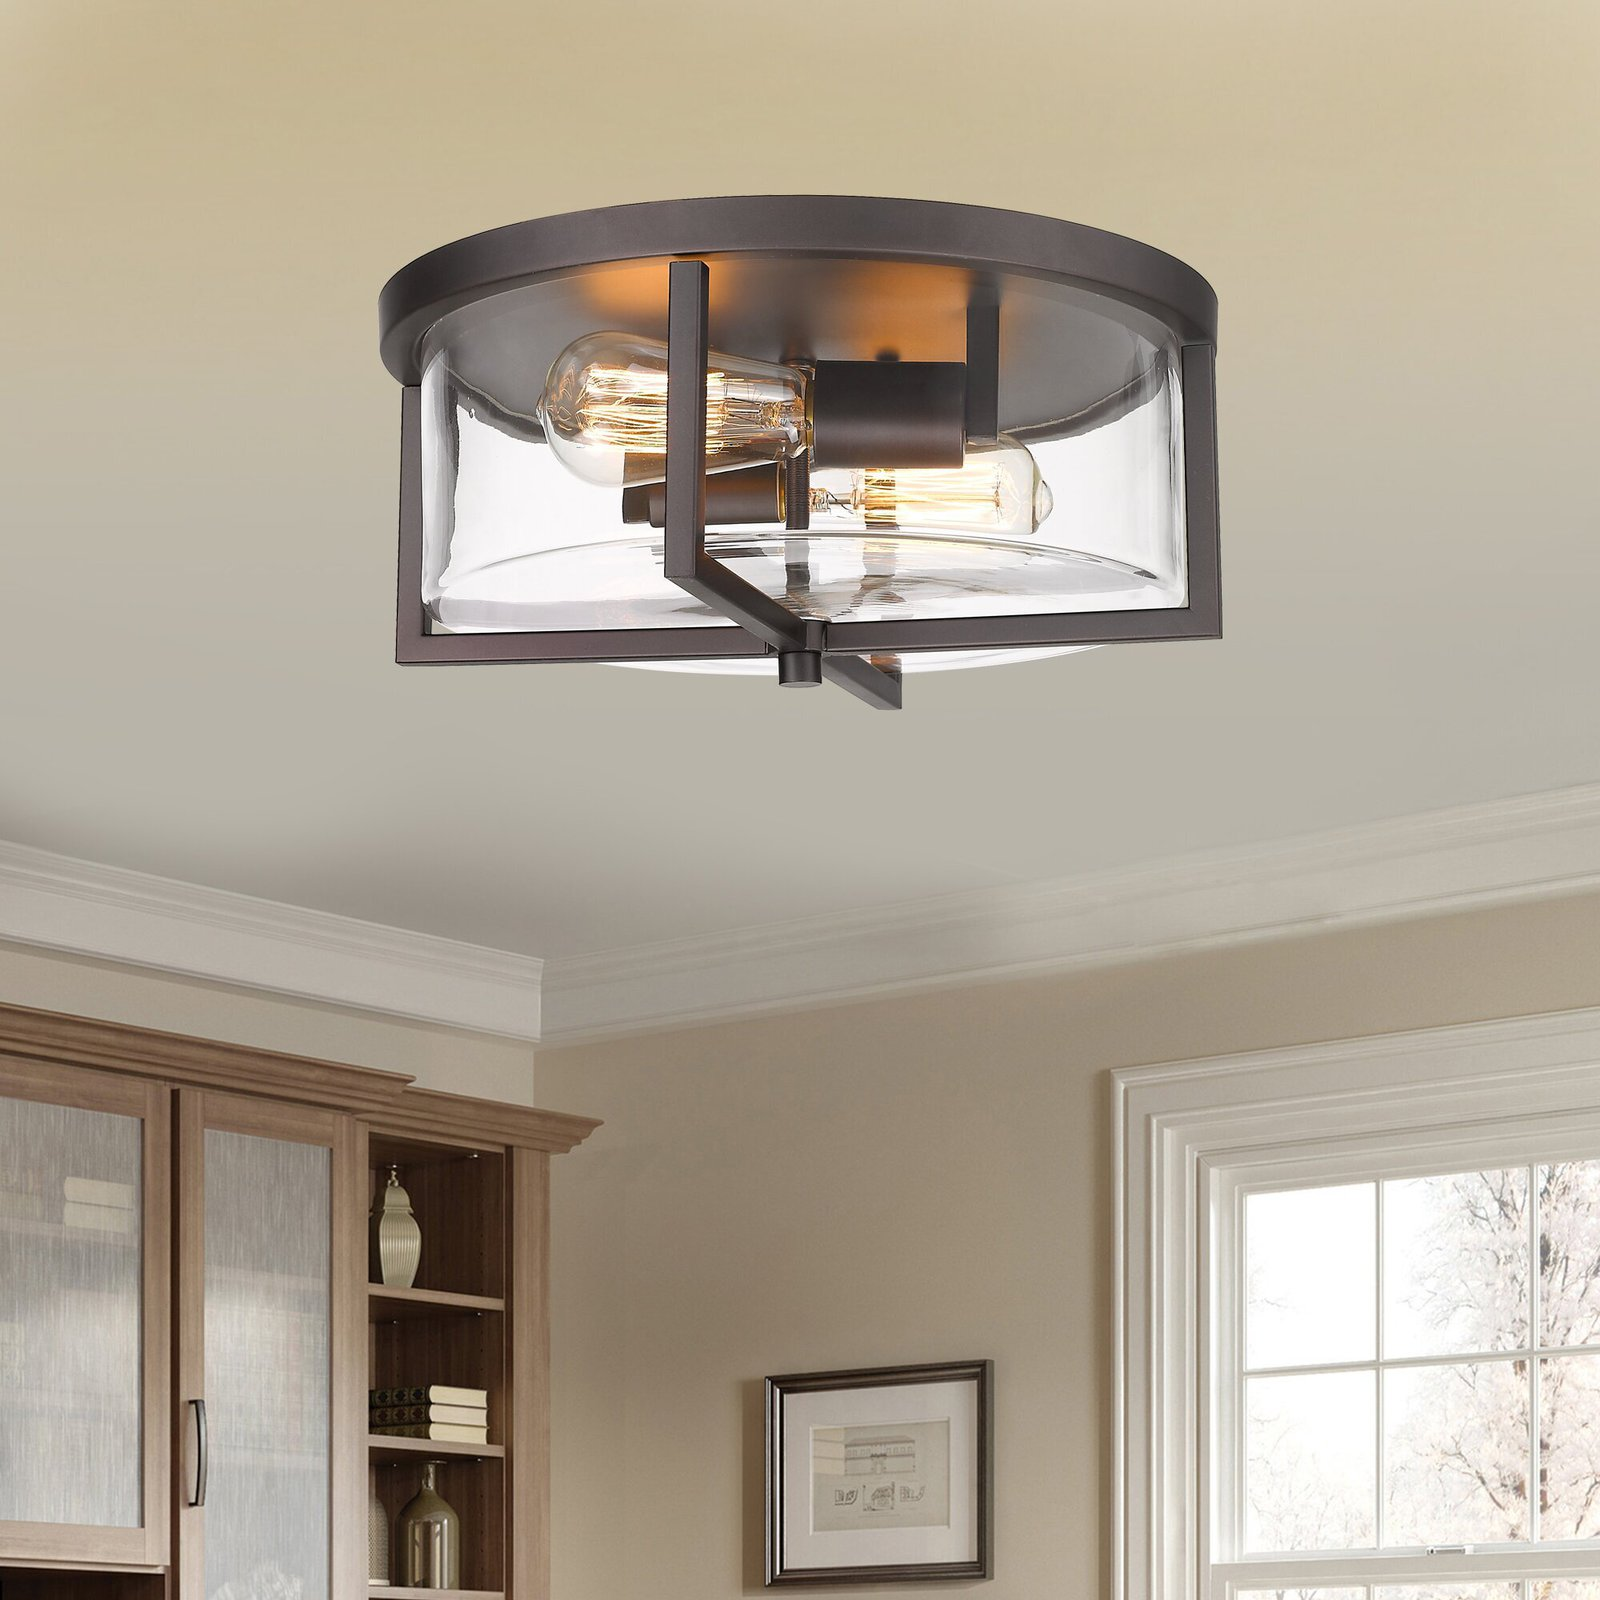 Simple Flush Mount LED Drum Light for Small Kitchen Spaces